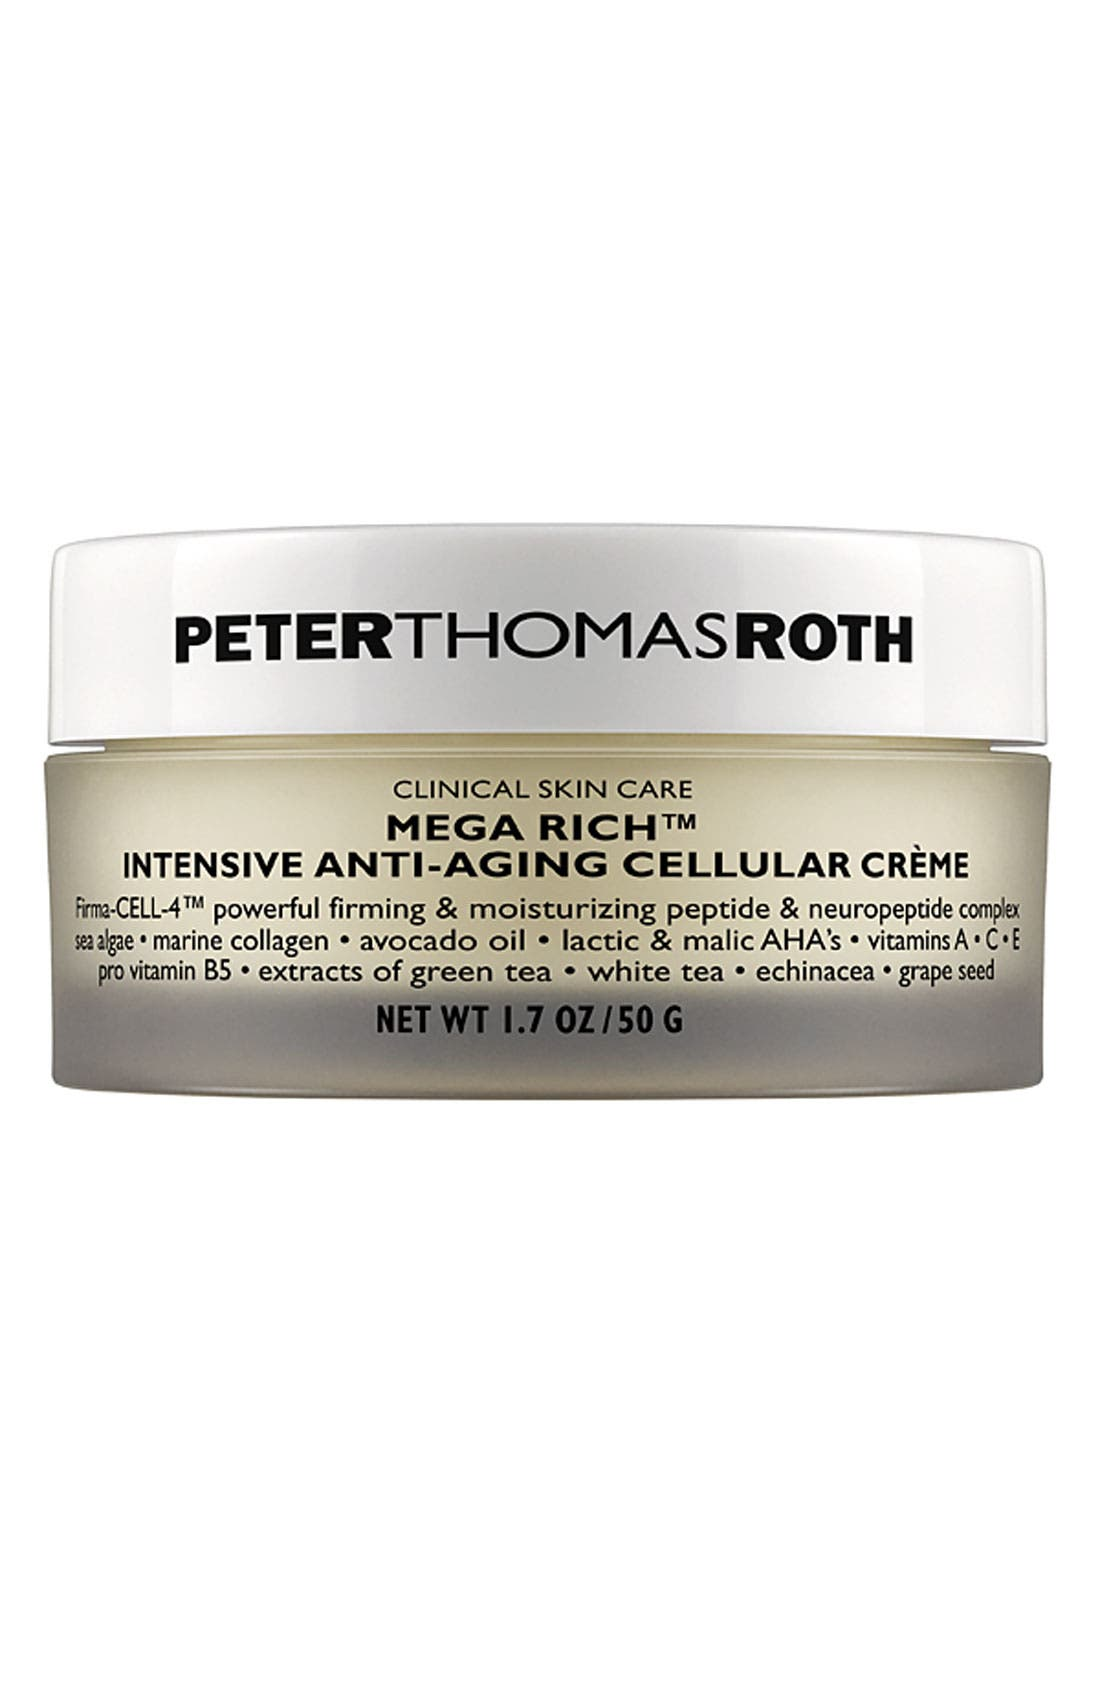 'Mega Rich' Intensive Anti-Aging Cellular Crème,                         Main,                         color, NO COLOR